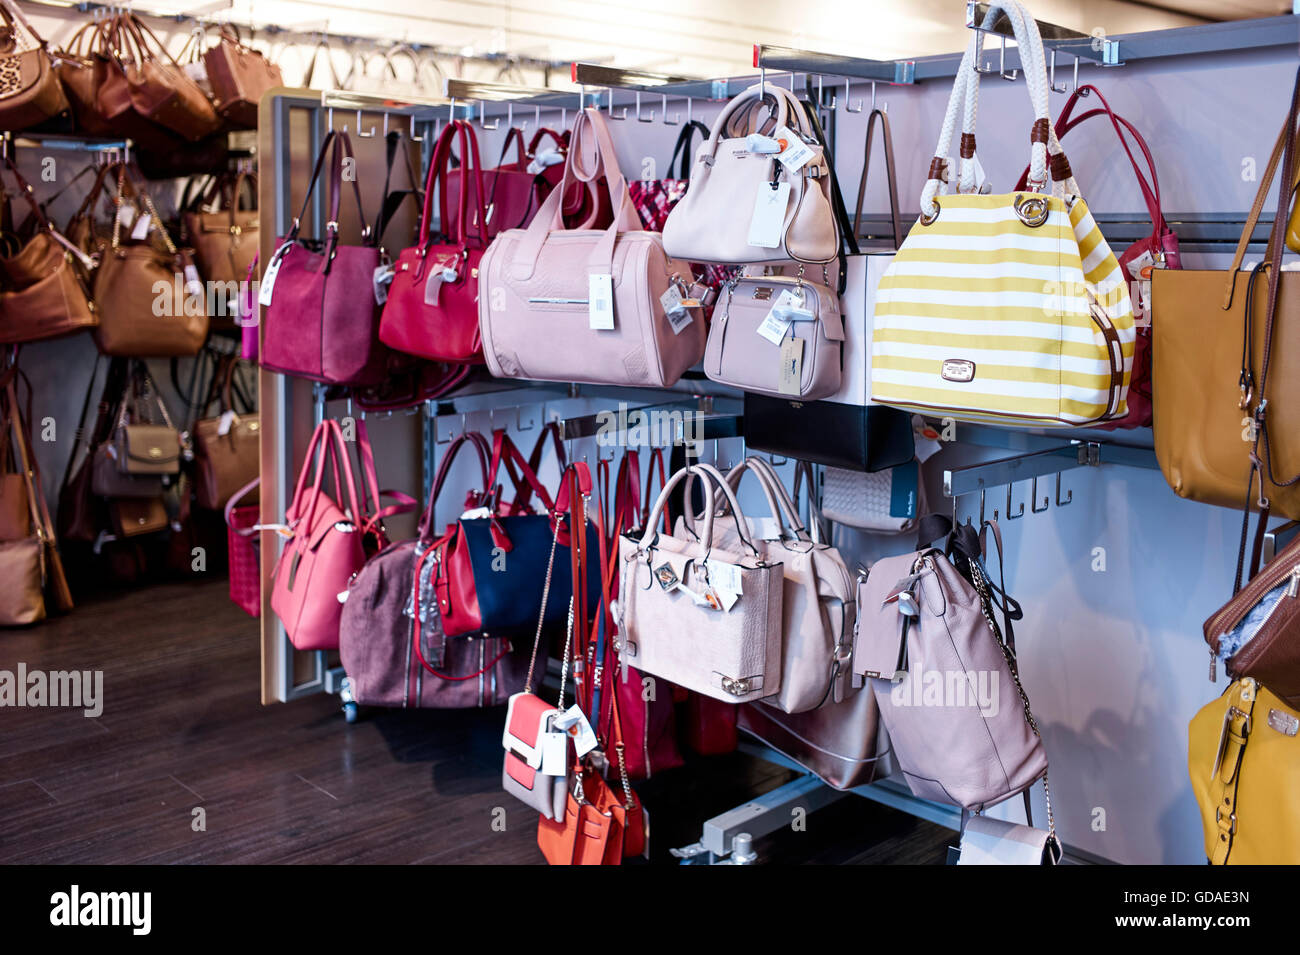 dd7402be688 Handbags Shop Stock Photos   Handbags Shop Stock Images - Page 2 - Alamy